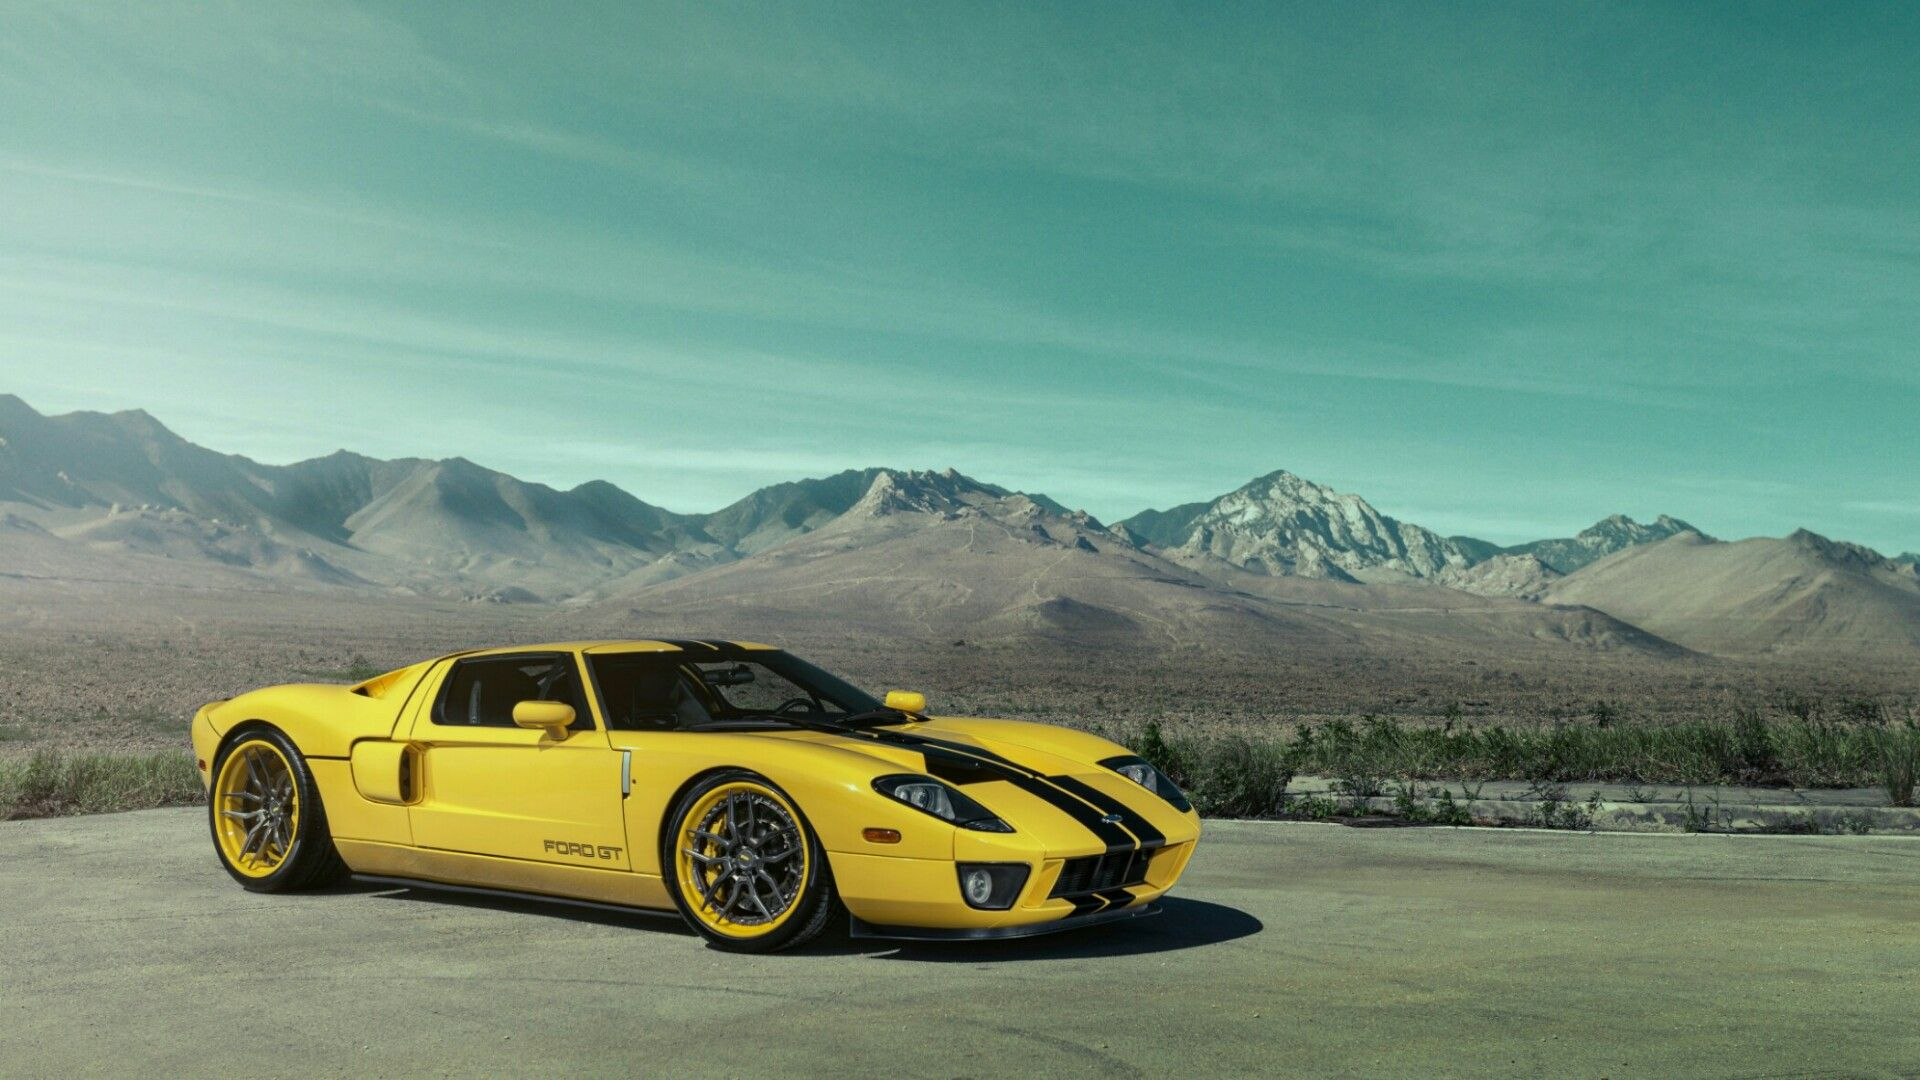 Ford Gt40 Wallpapers For Iphone Ford Gt40 Gt40 Iphone Wallpaper